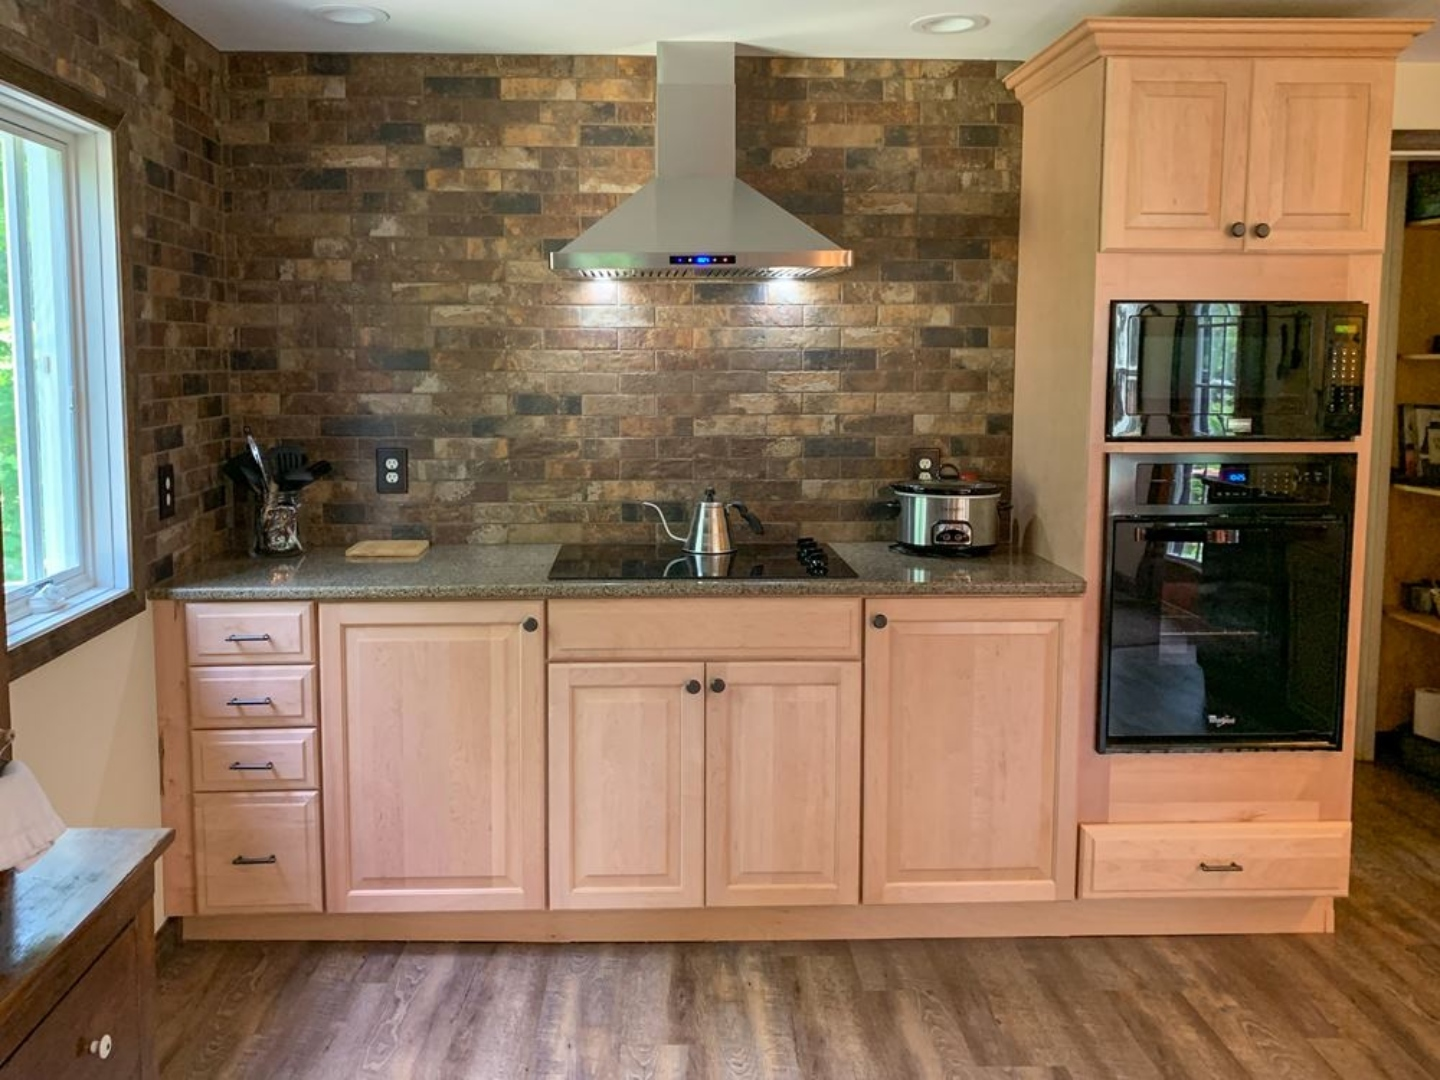 A large kitchen with stainless steel appliances and wooden cabinets at Red Fox Run Bed & Breakfast.